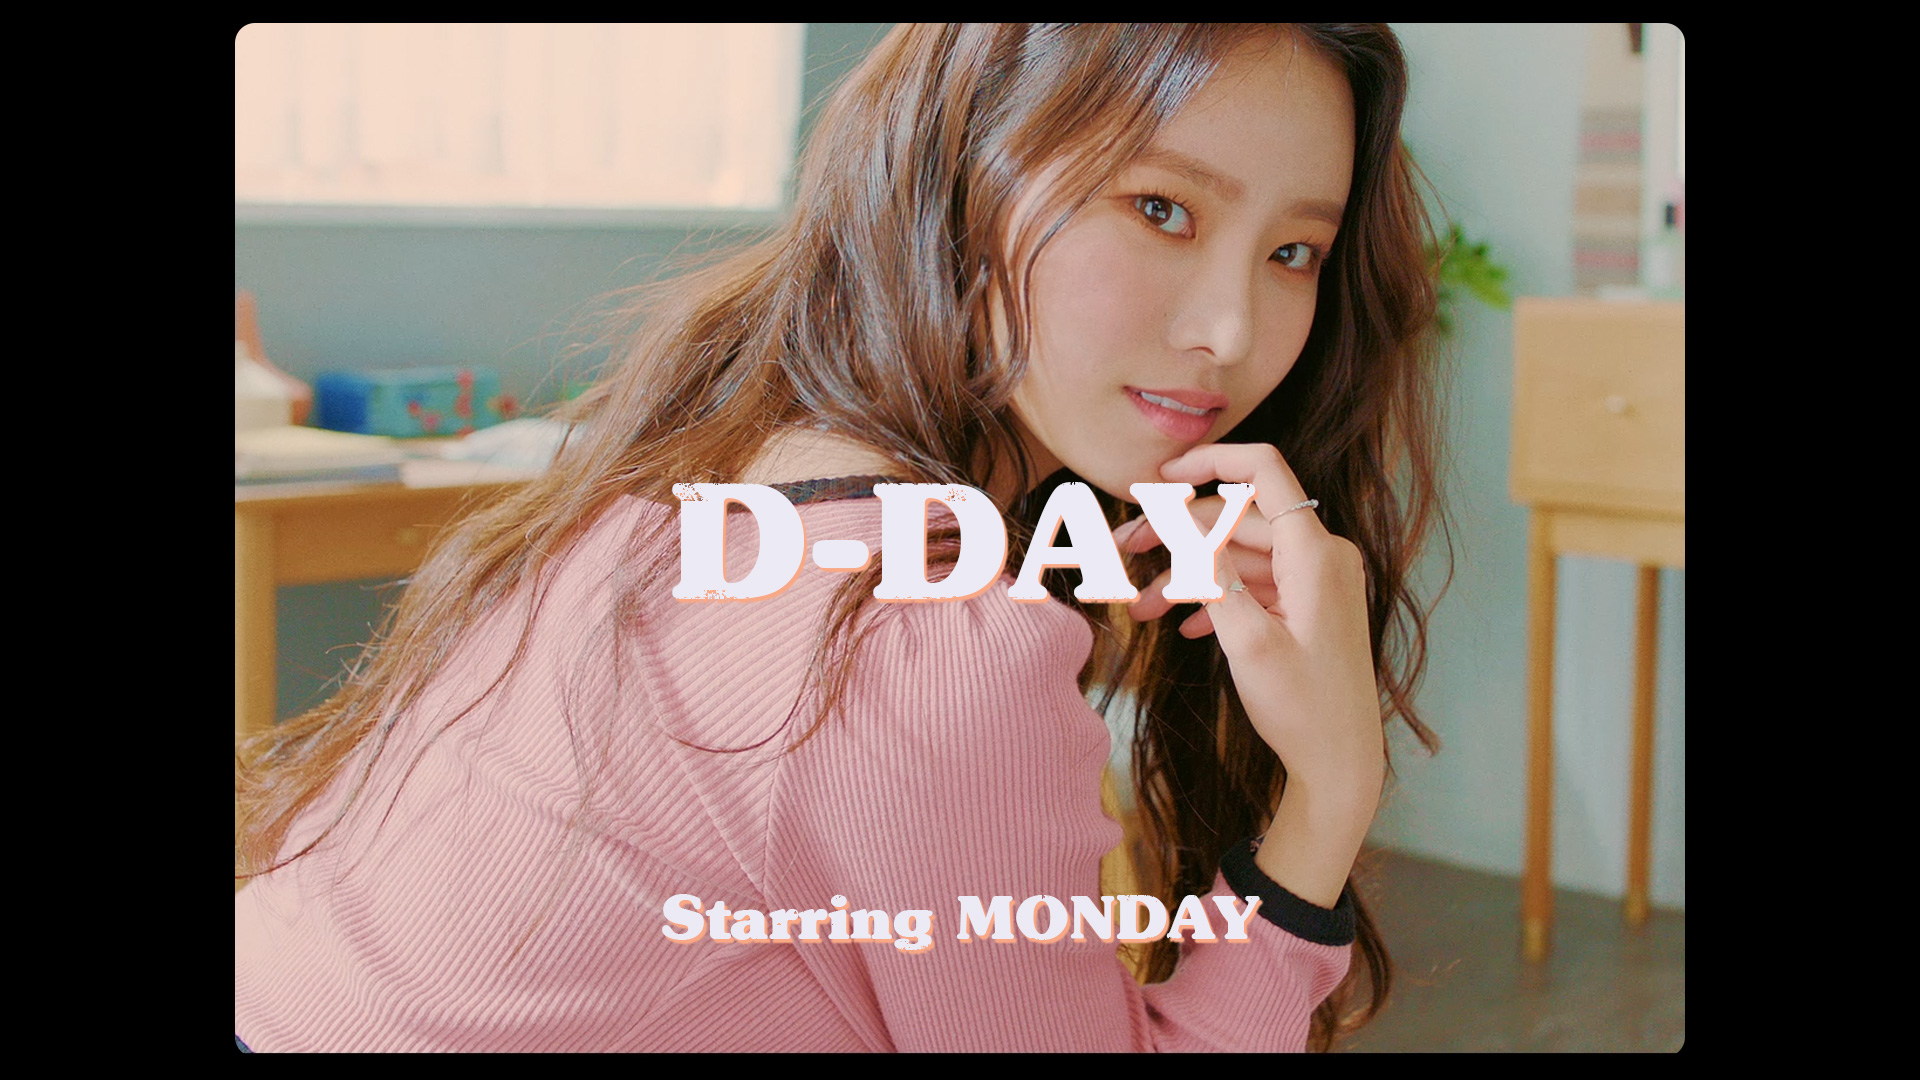 [The Weeekly Story] D-DAY : MONDAY